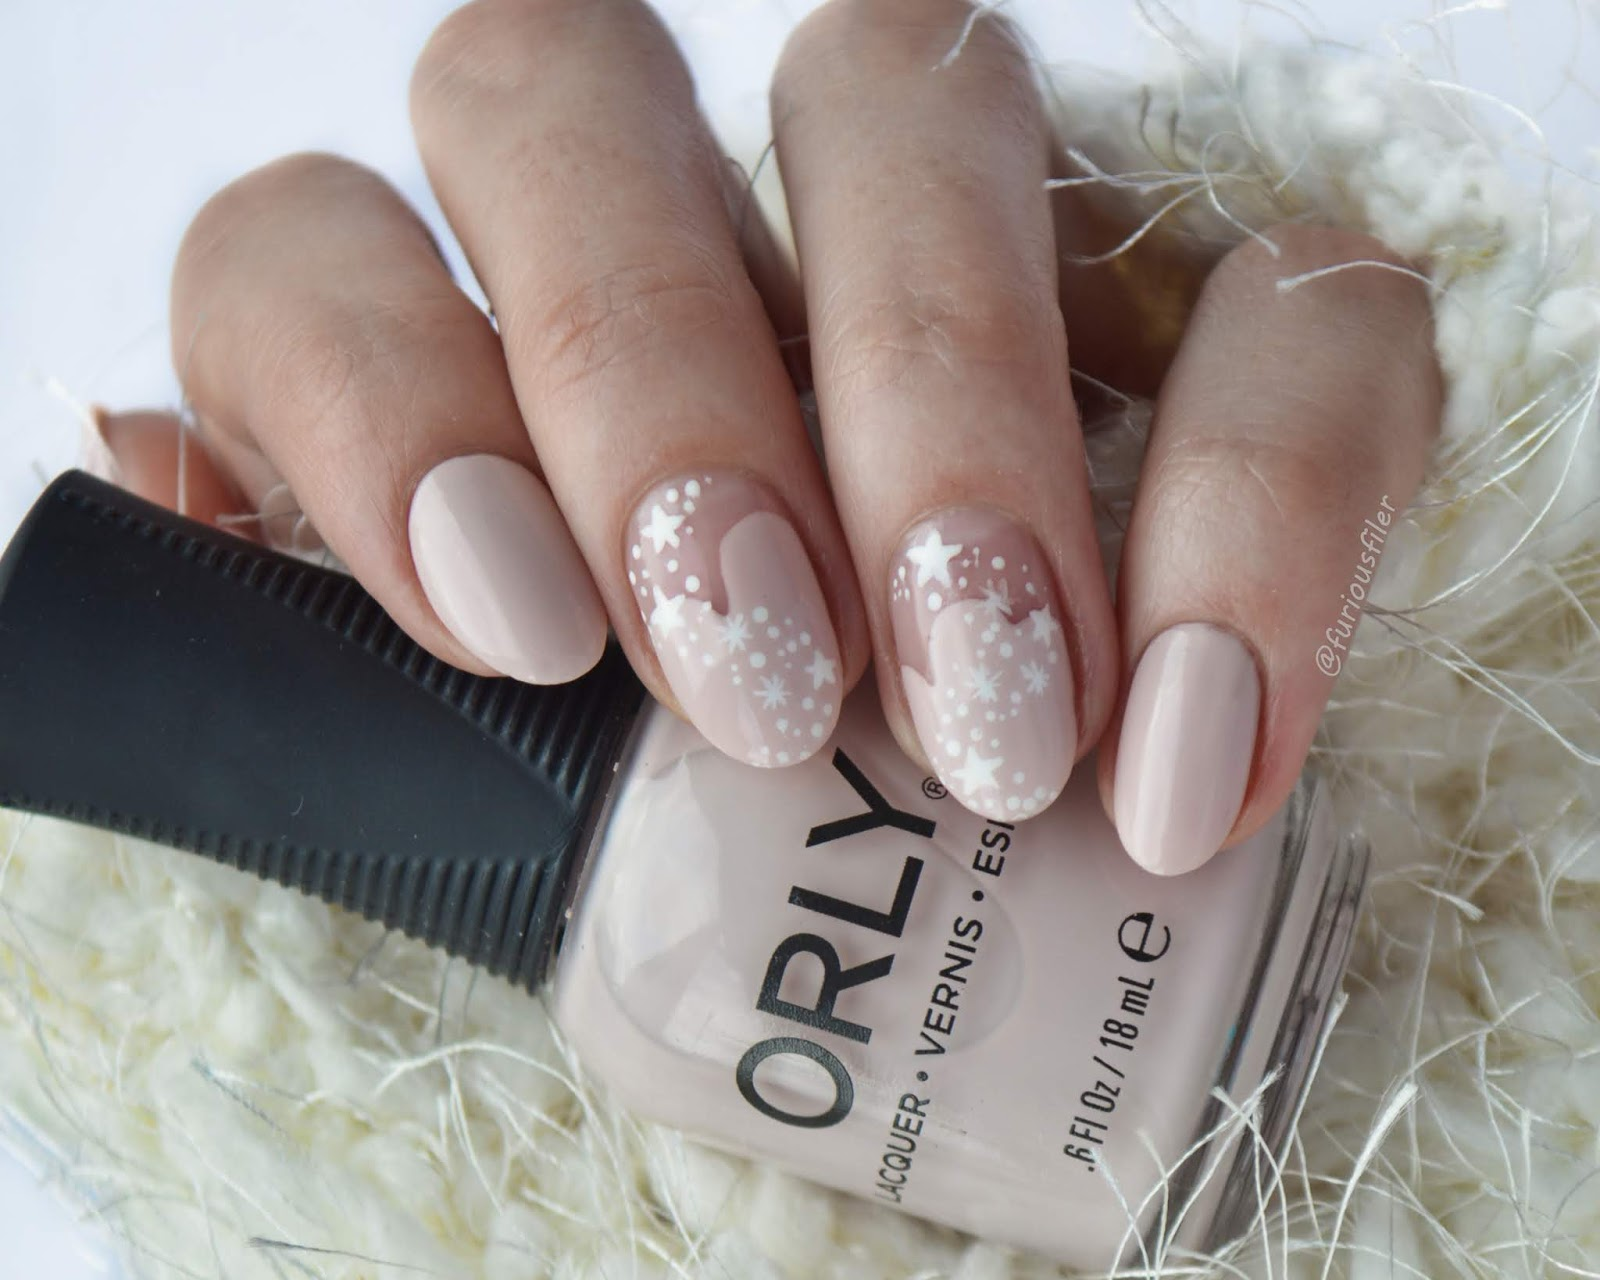 frozen snow nude delicate nails furiousfiler